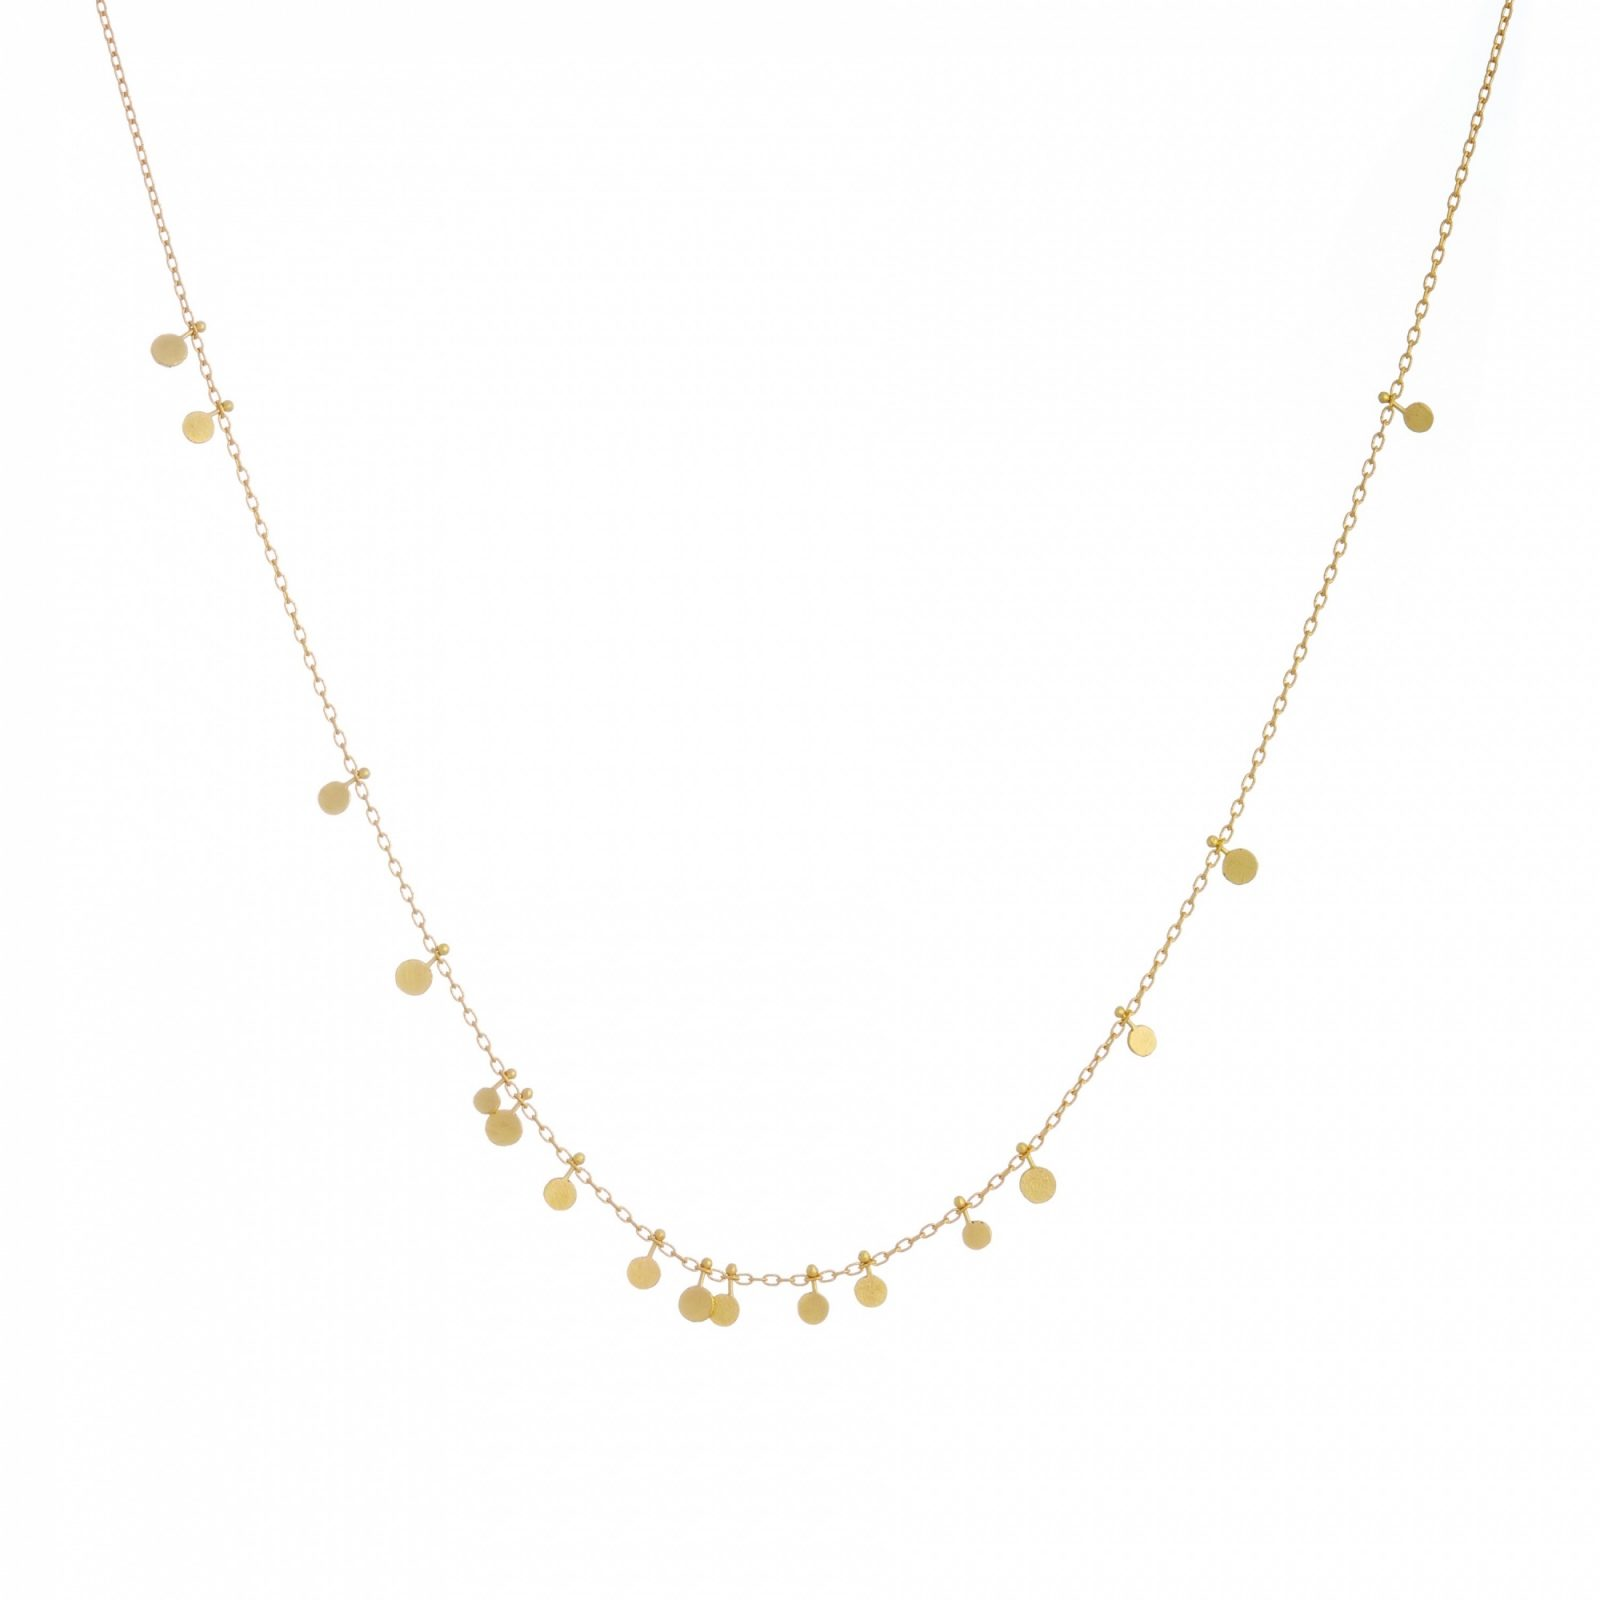 Sia Taylor DN321 Y Tiny Random Yellow Gold Dots Necklace WB